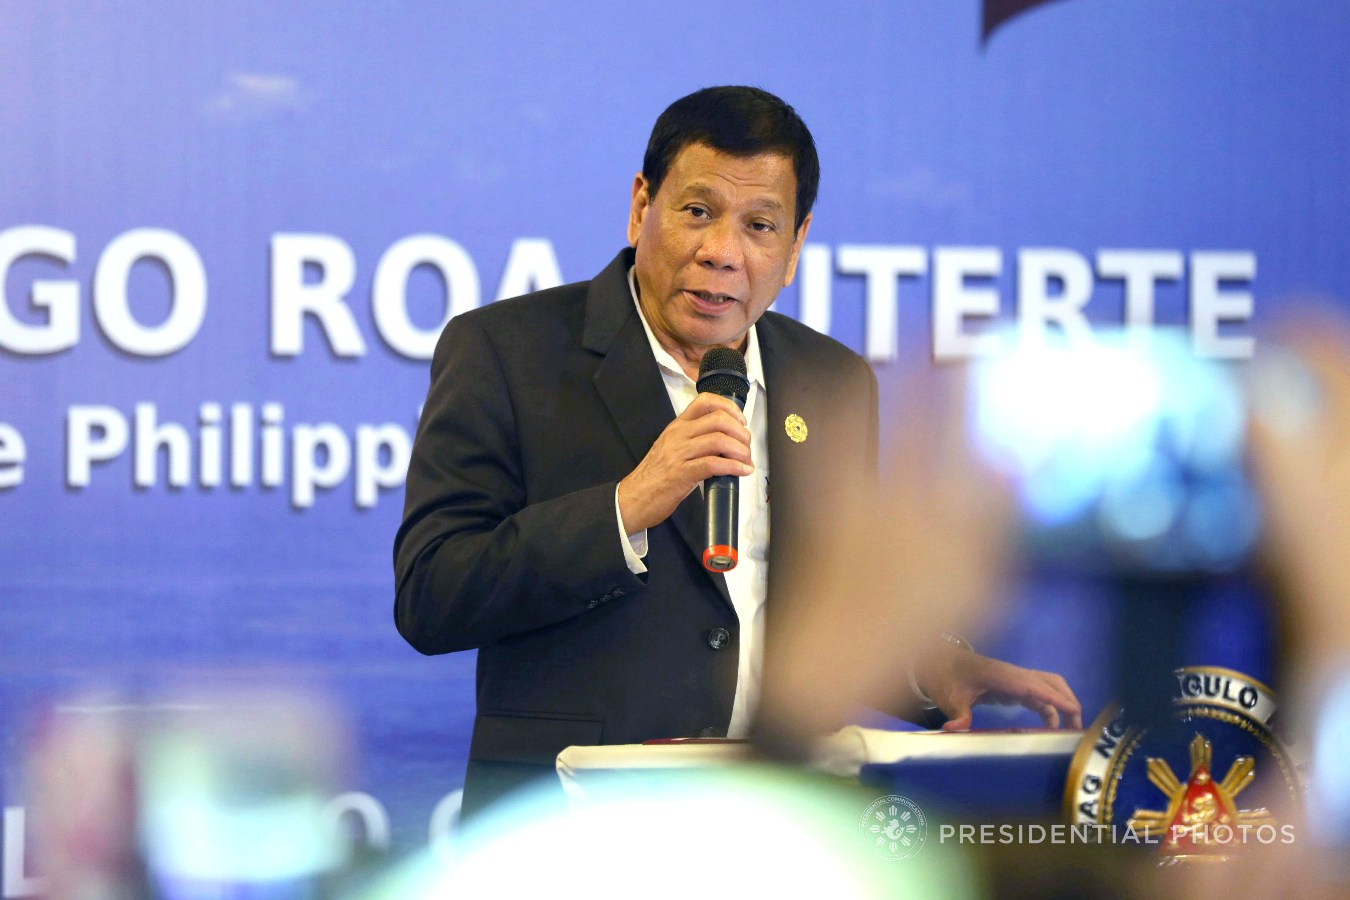 President Rodrigo Duterte on Saturday said he was waiting for Congress to take action on the proposed Bangsamoro Basic Law (BBL) so the administration's campaign for a federal form of government could push through. (PCOO PHOTO)